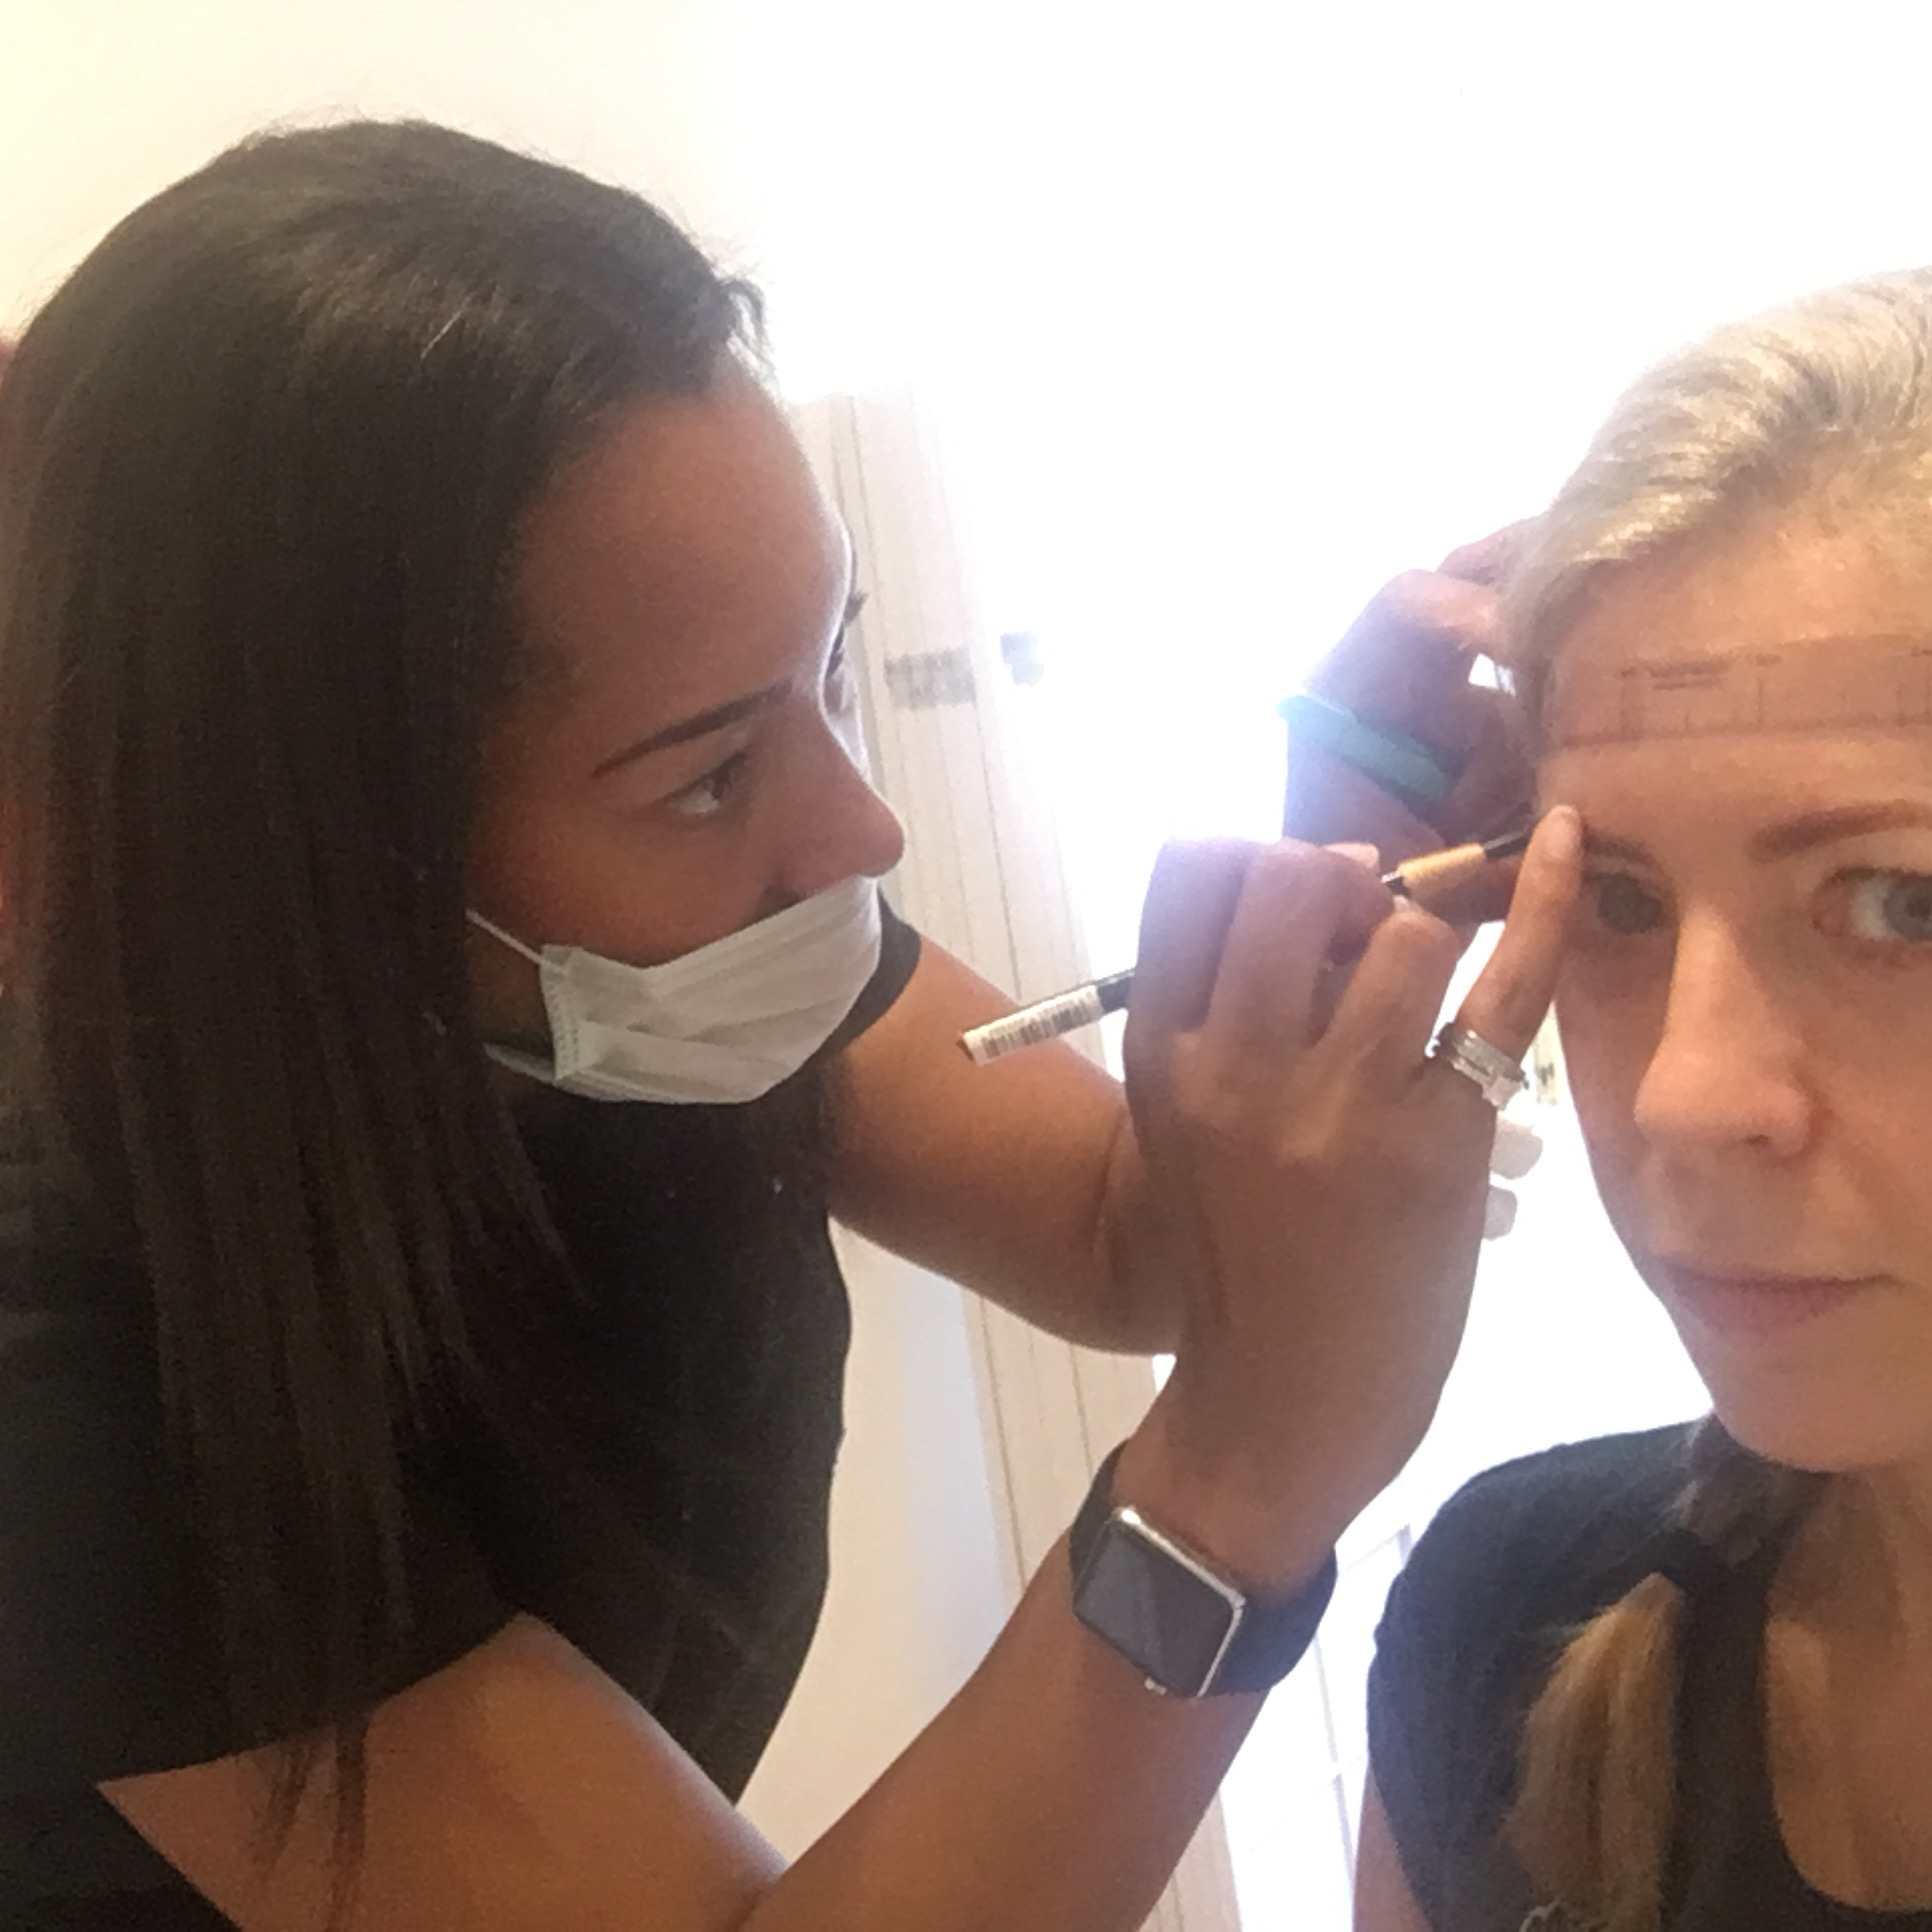 Sian Dellar, eyebrow microblading expert, first measures up my brows